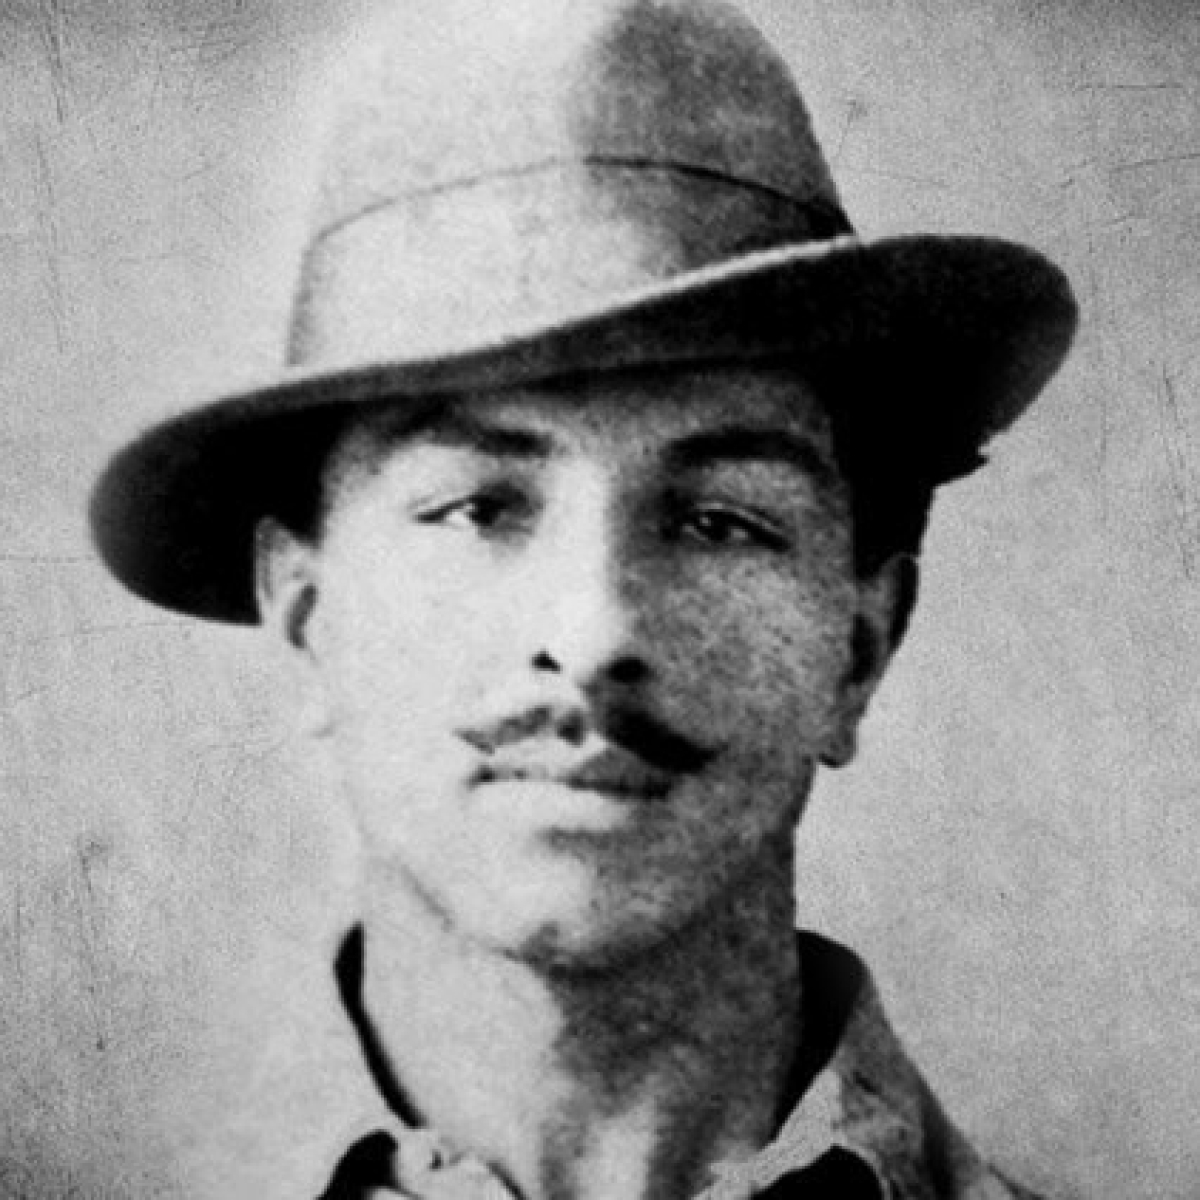 'Why I am an atheist': Full text of Bhagat Singh's legendary essay